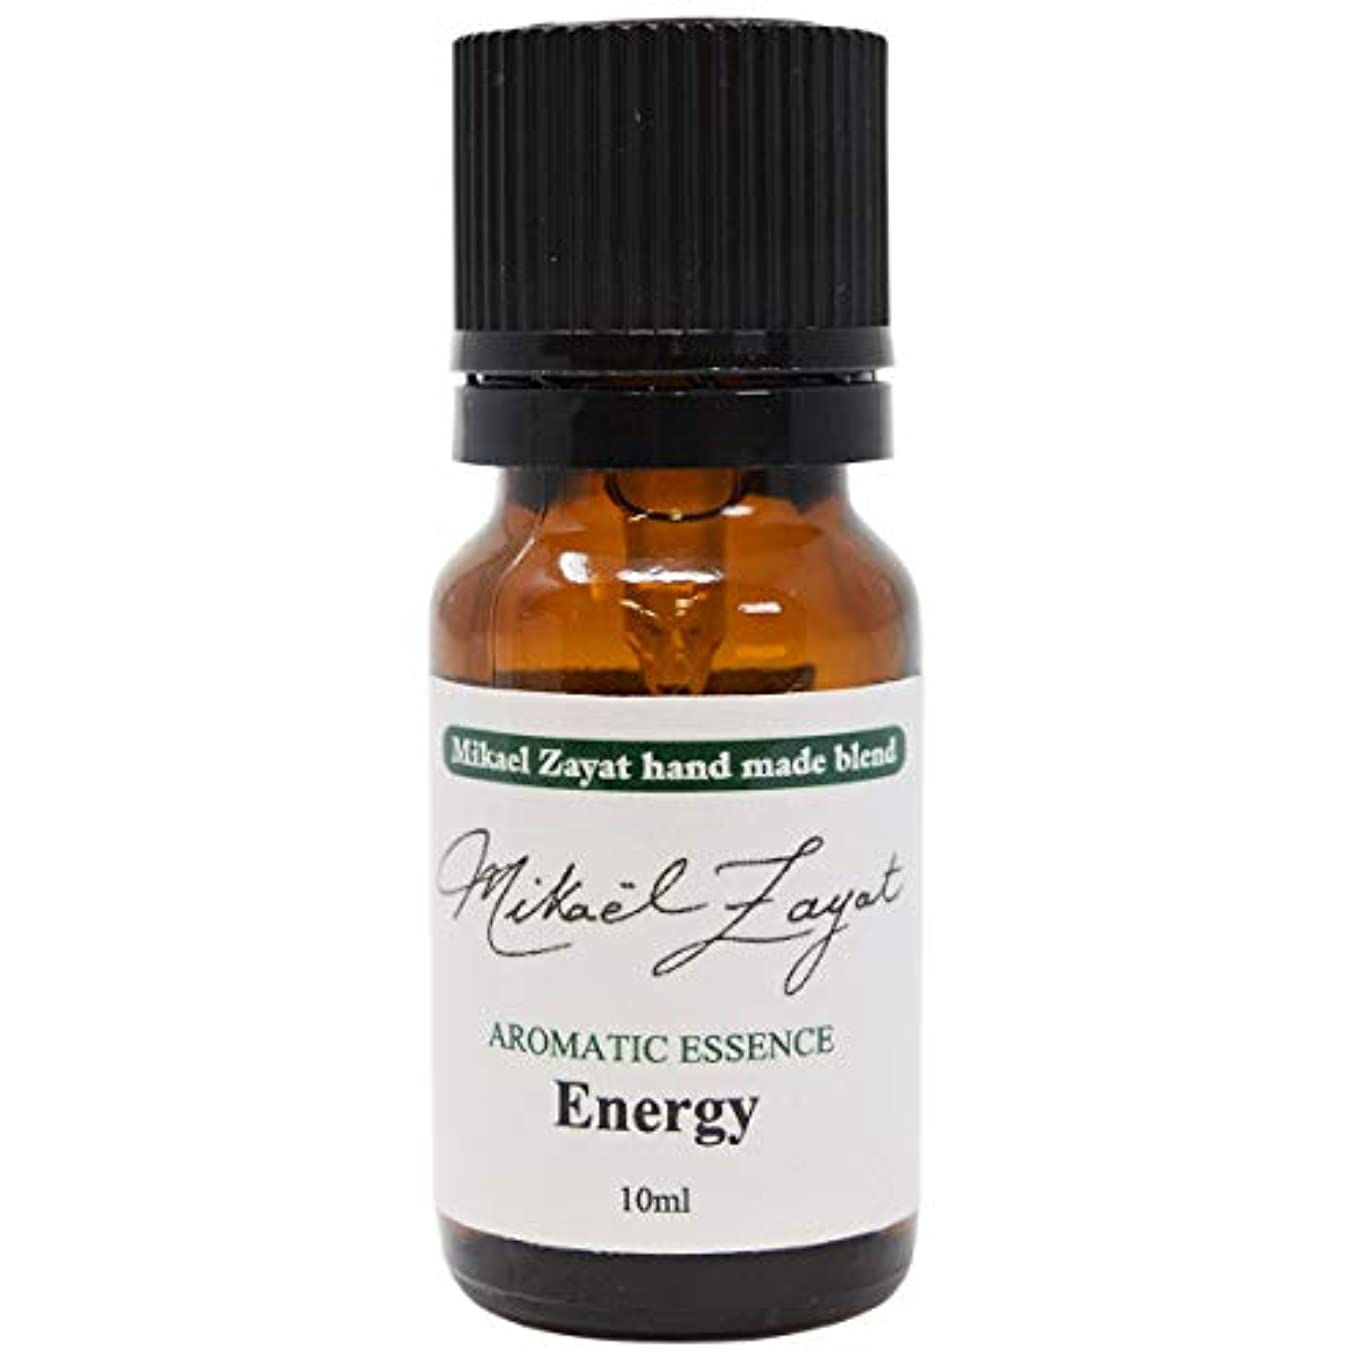 ミカエルザヤット エナジー Energy 10ml Mikael Zayat hand made blend